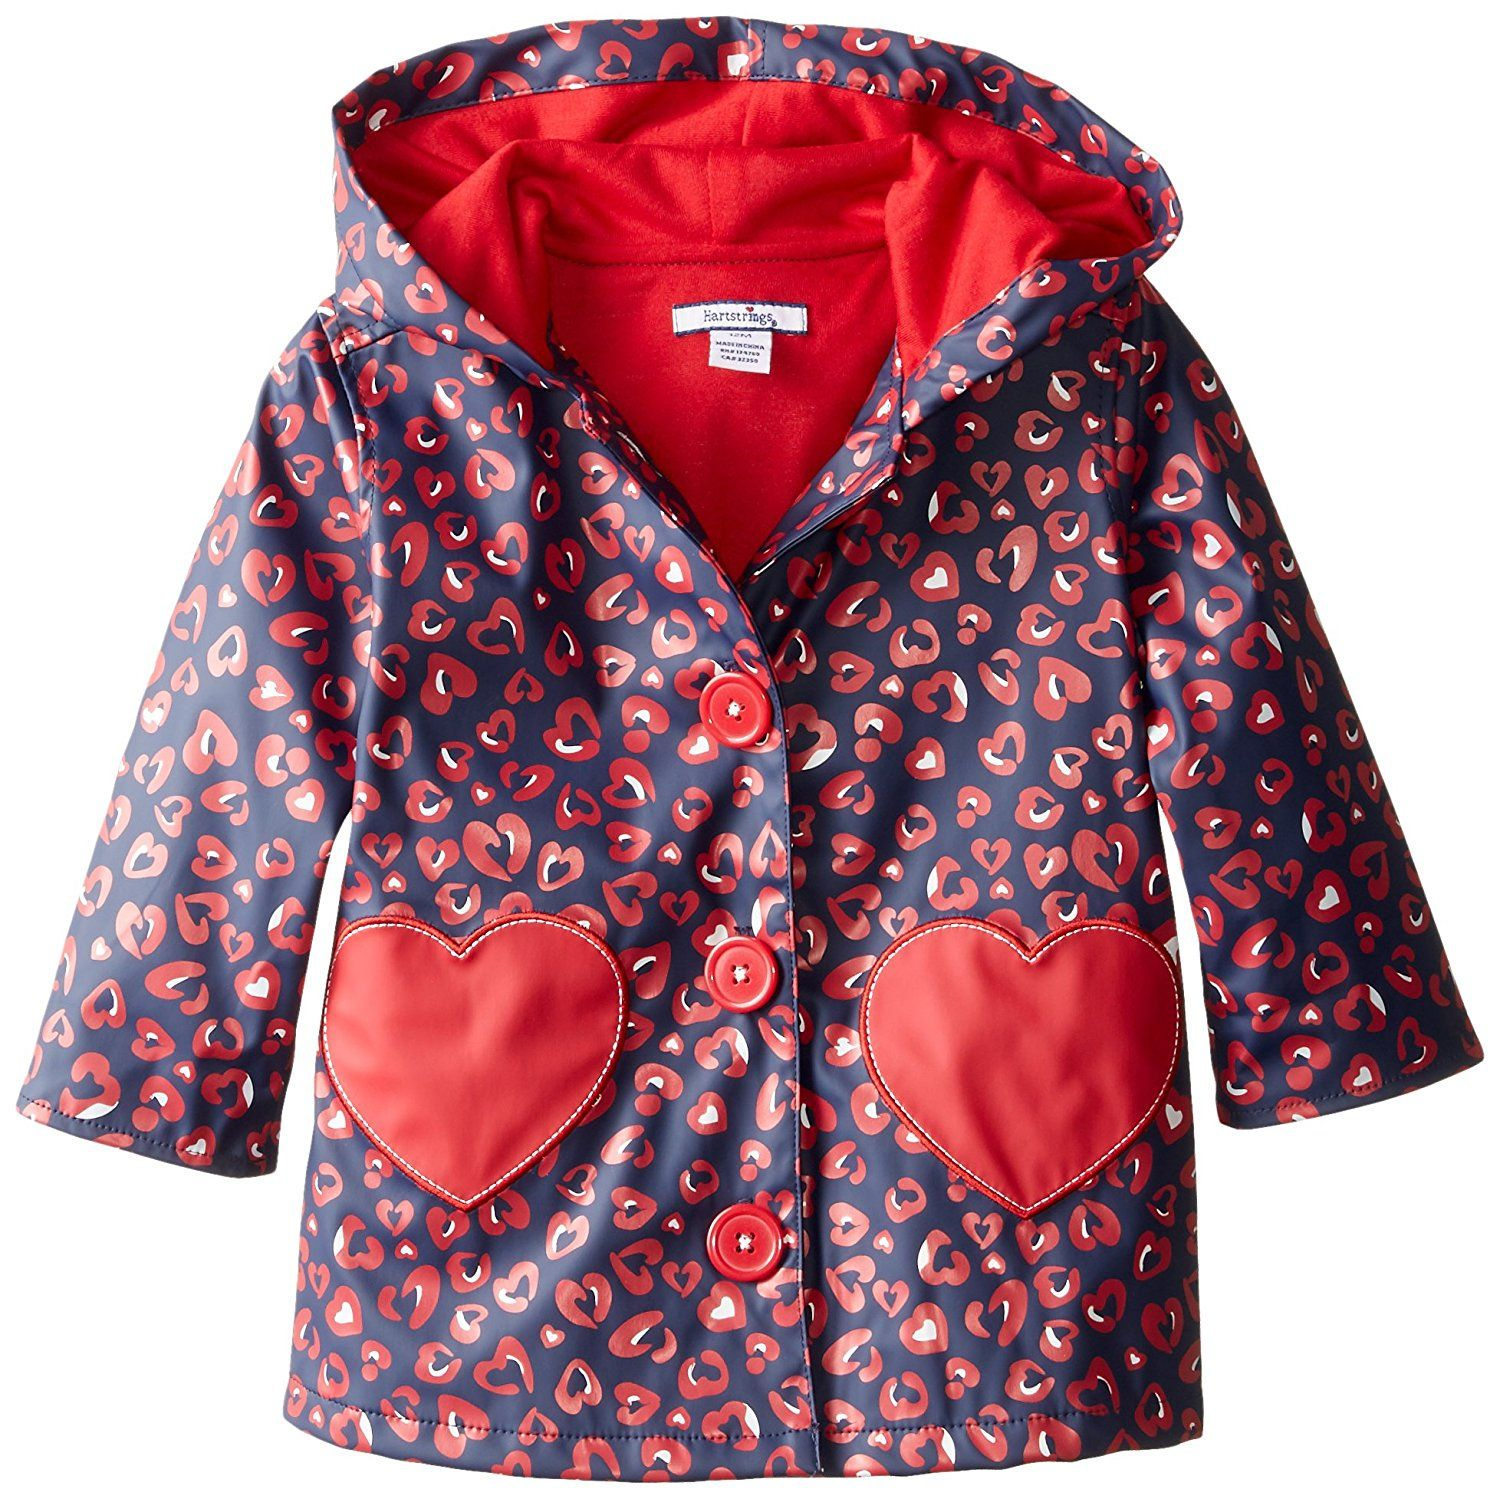 58f629a35 Hartstrings Baby-Girls Infant Heart Animal Print Hooded and Lined ...